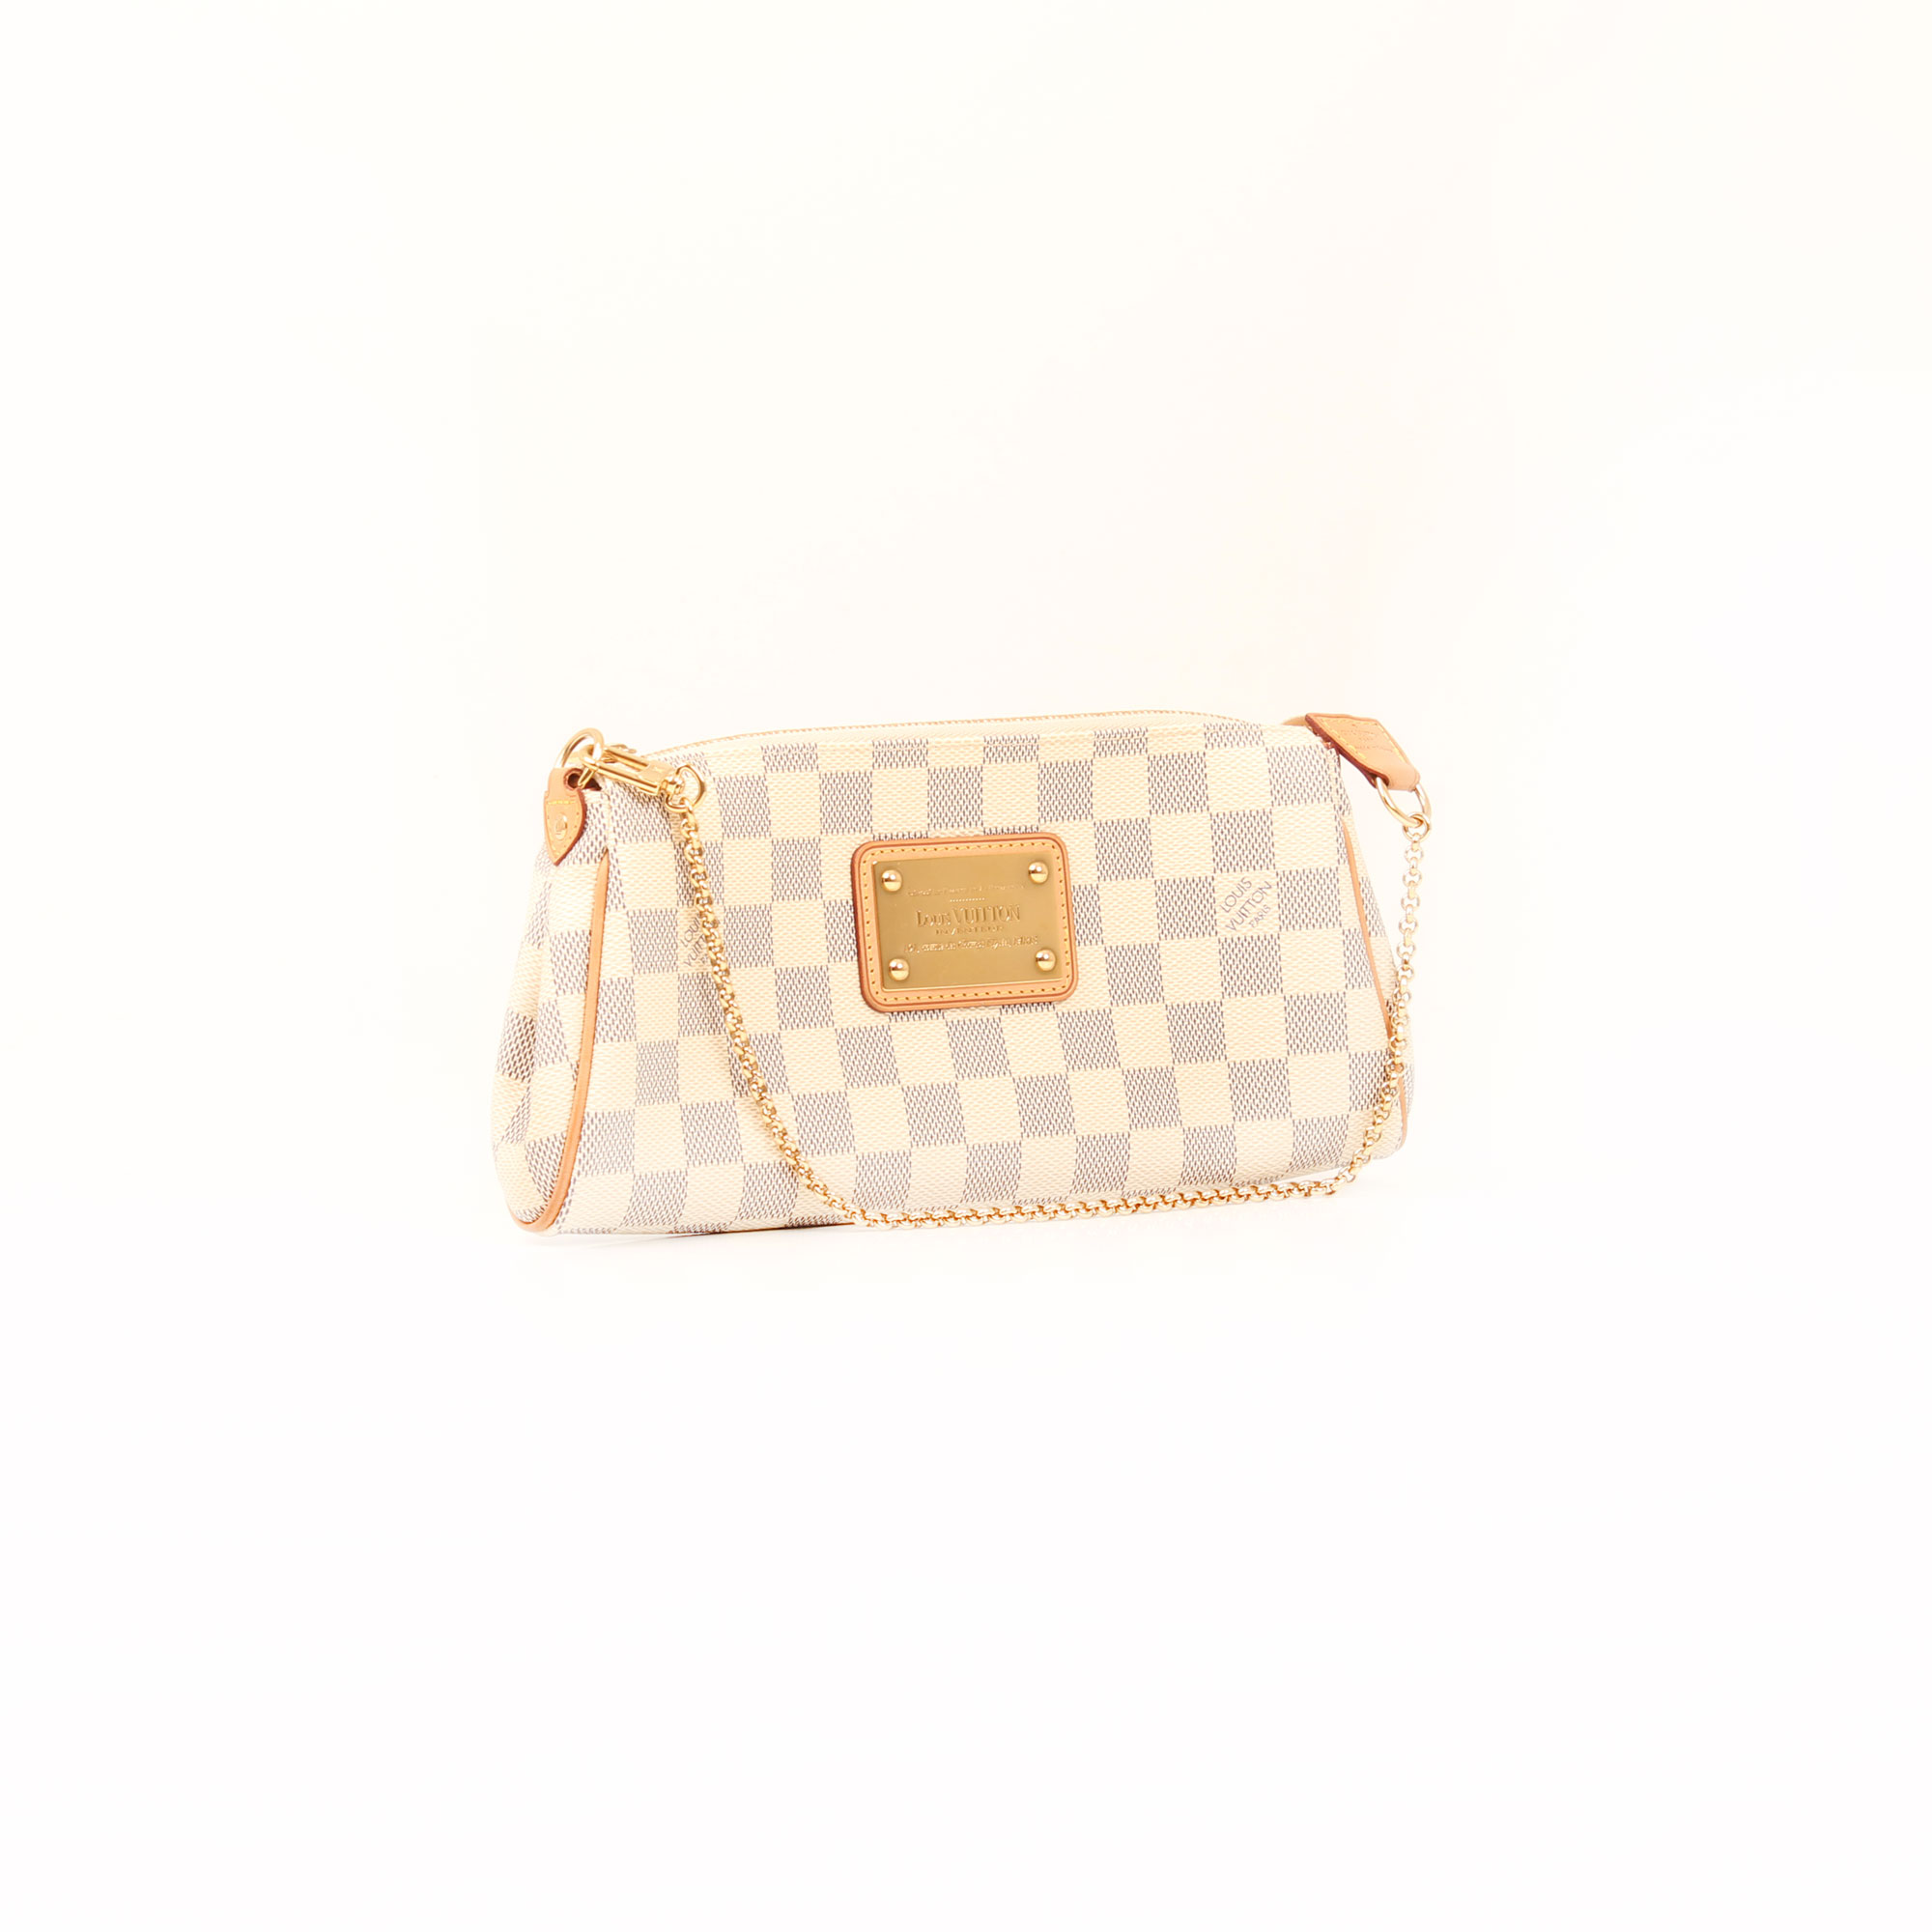 pochette-louis-vuitton-eva-damier-azur-chain-general